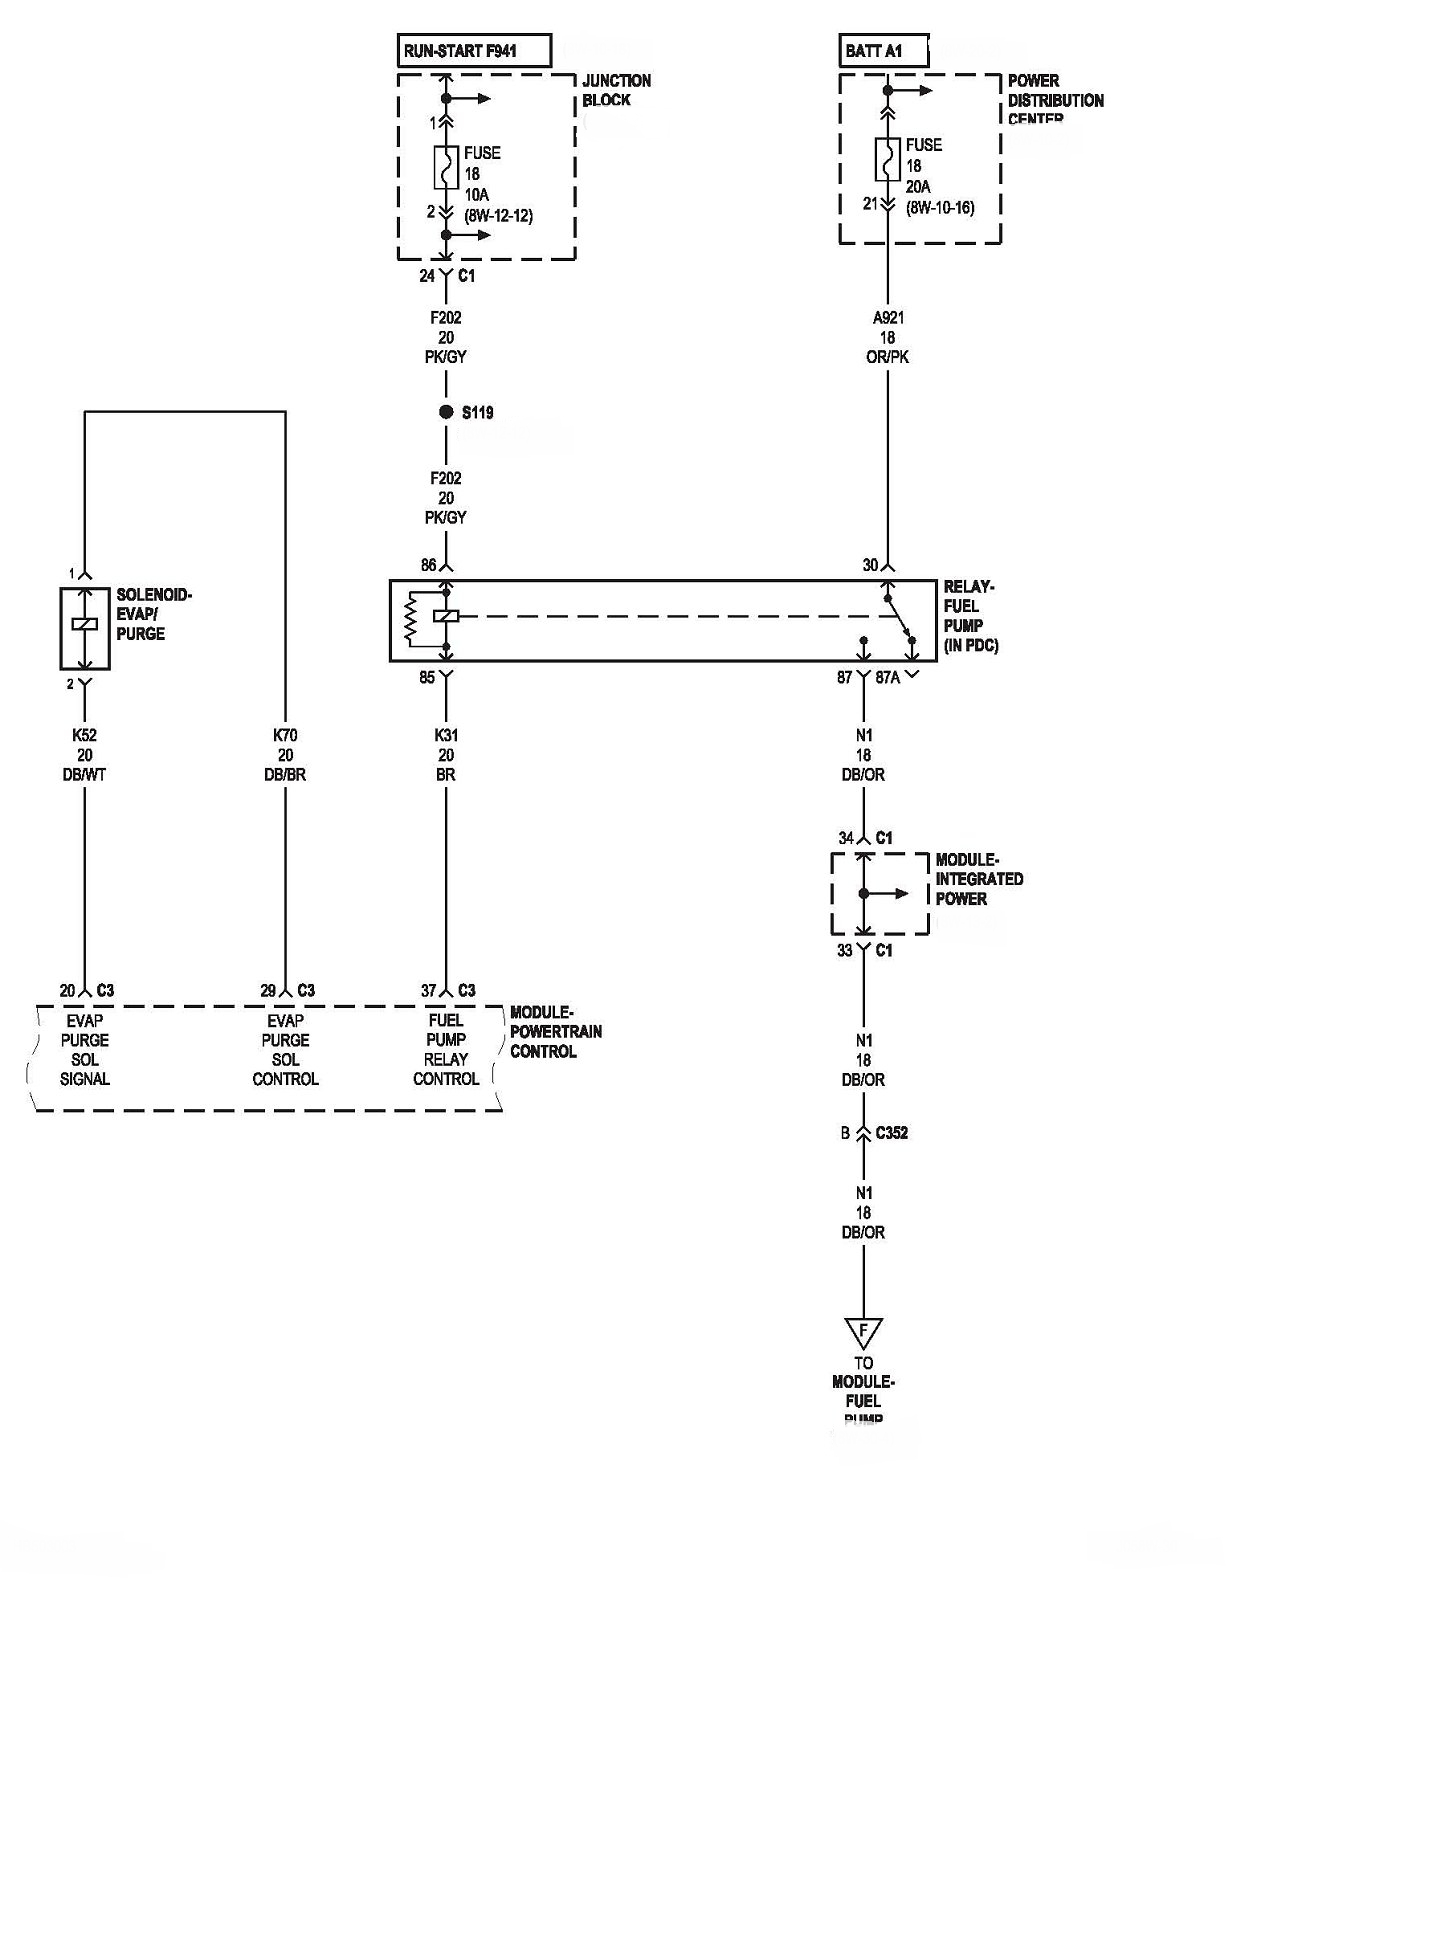 I Have 2005 Dodge Durango The Fuel Pump Is Not Comeing On I Check - Fuel Pump Wiring Diagram